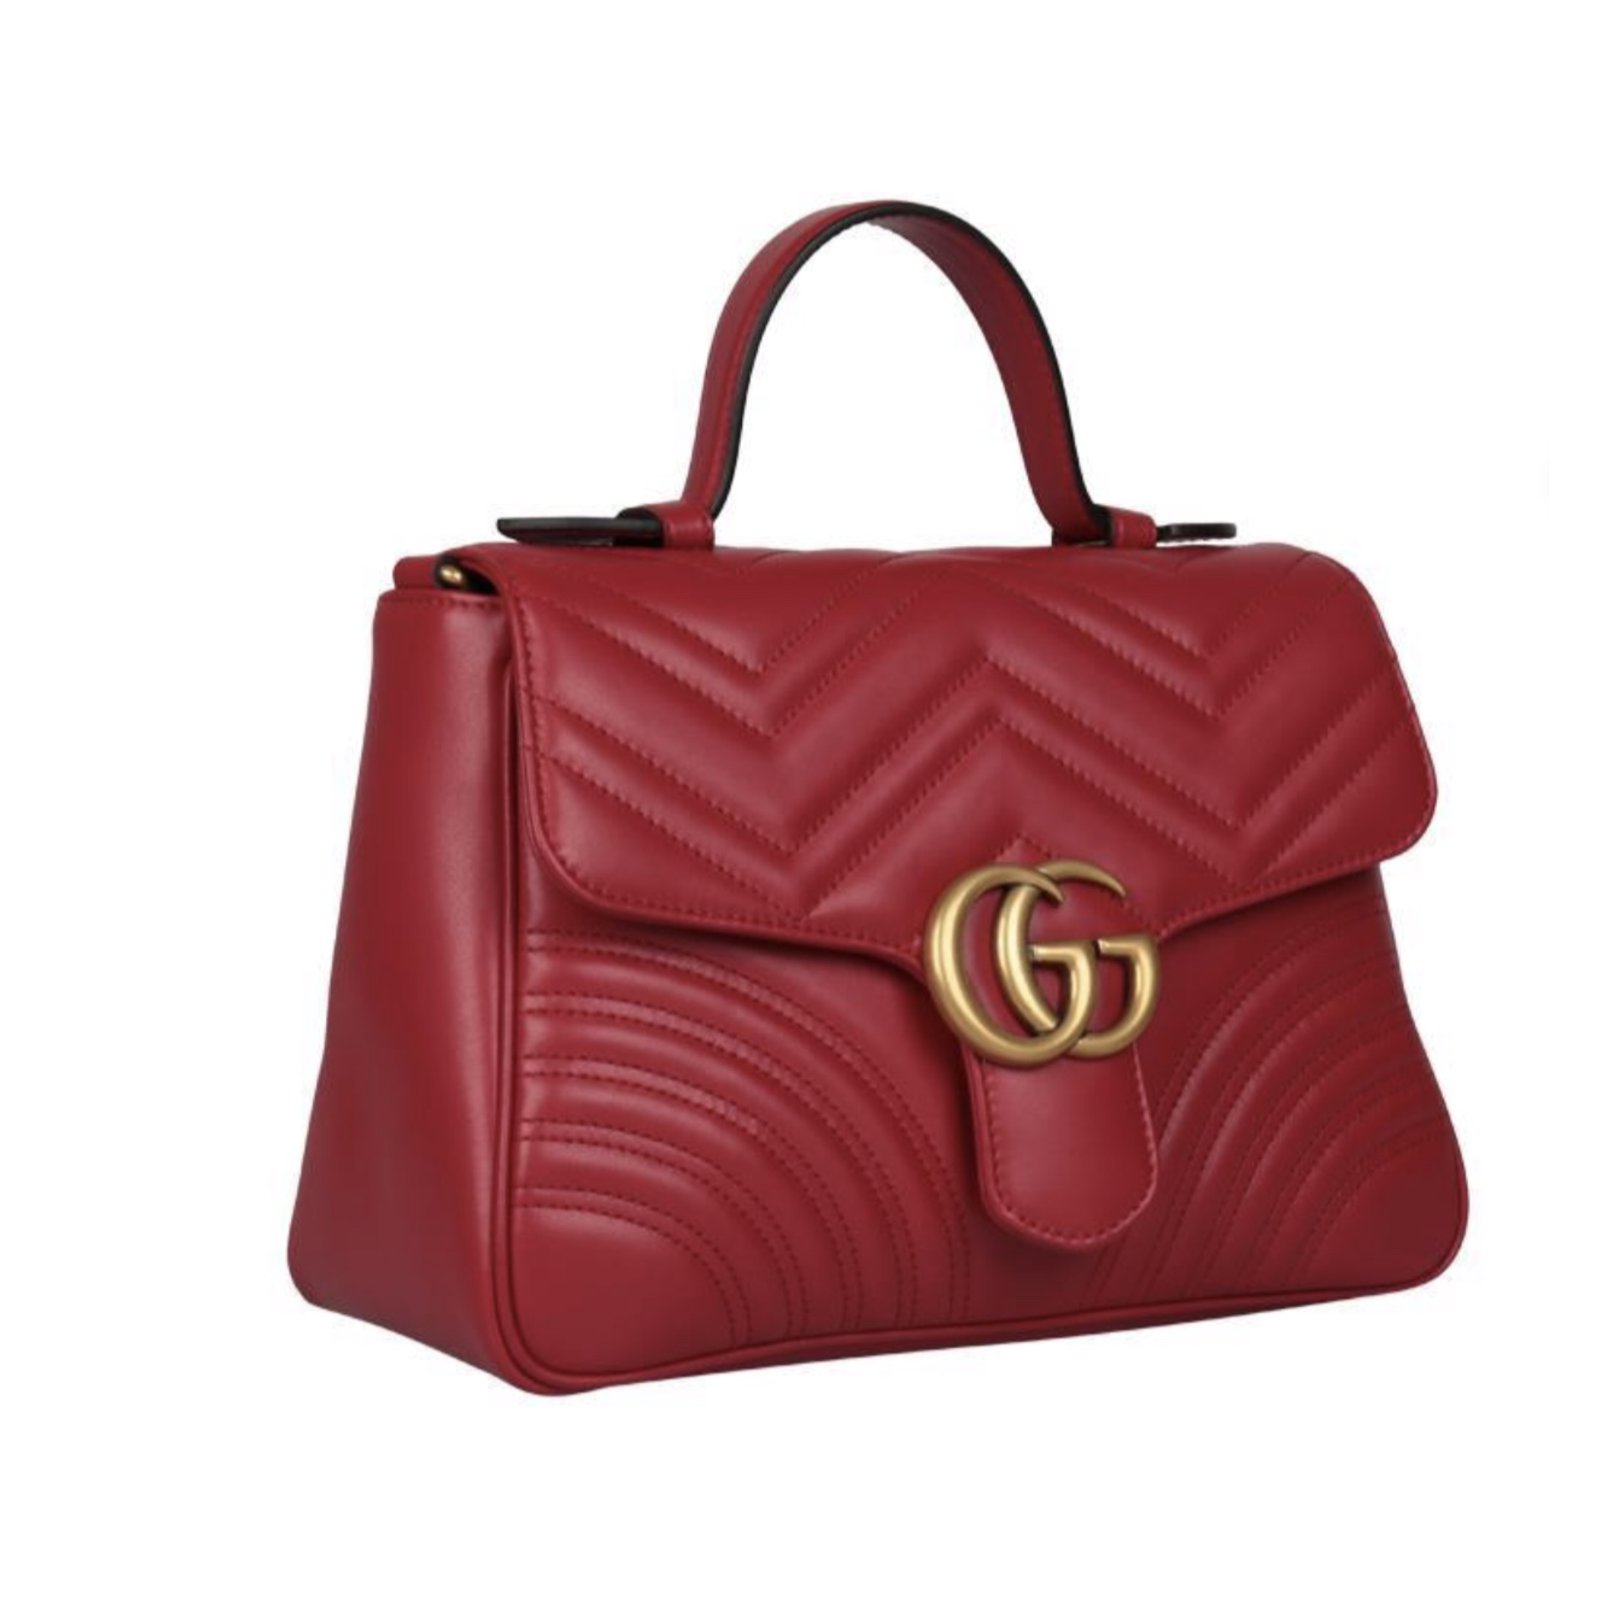 93fca0a6552a Facebook · Pin This. Gucci Handbags Handbags Leather Red ref.73299